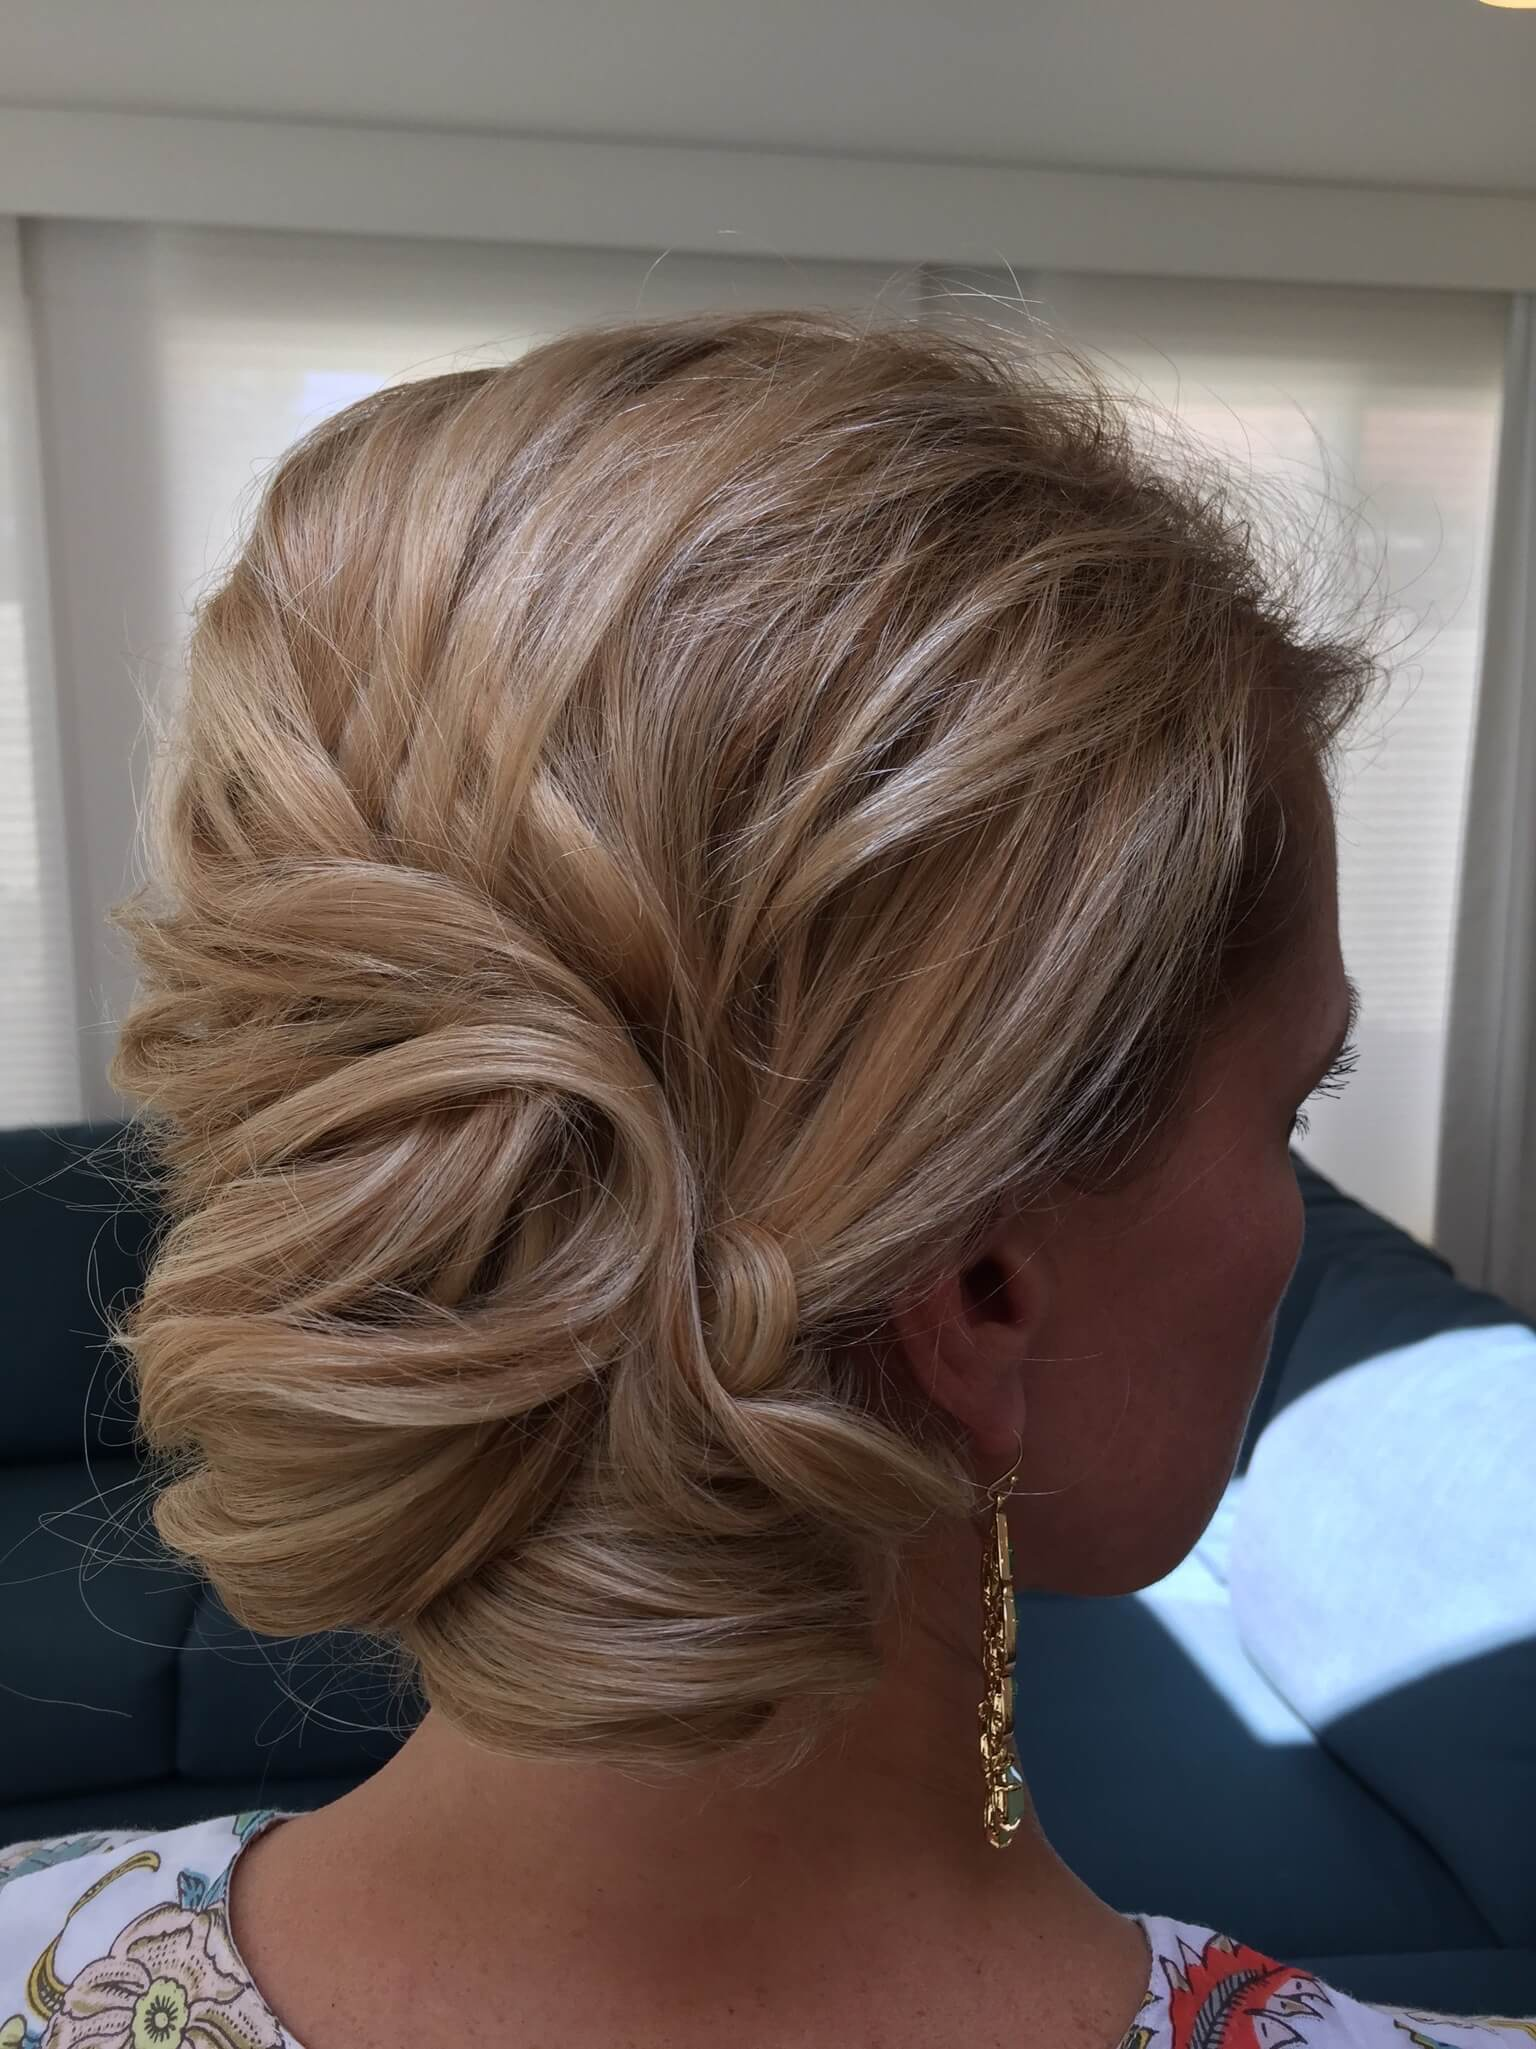 hair-salon-jacksonville-wedding-hairstyles-59